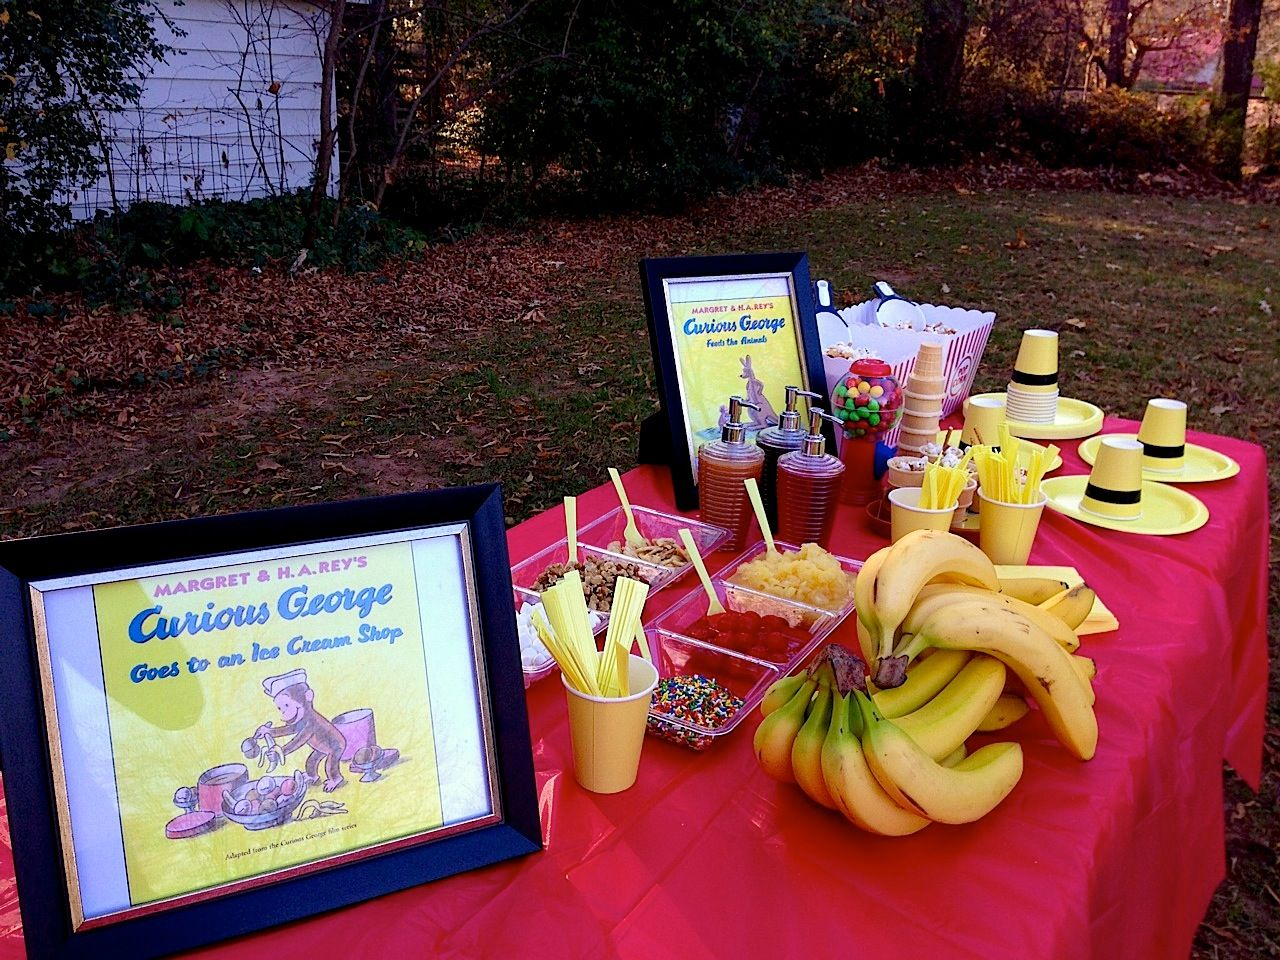 Everyday Champagne Curiously Strong Outdoor At Home Curious George Birthday Party For A 5 Year Old Boy Or Girl Banana Split Bar Scavenger Hunt